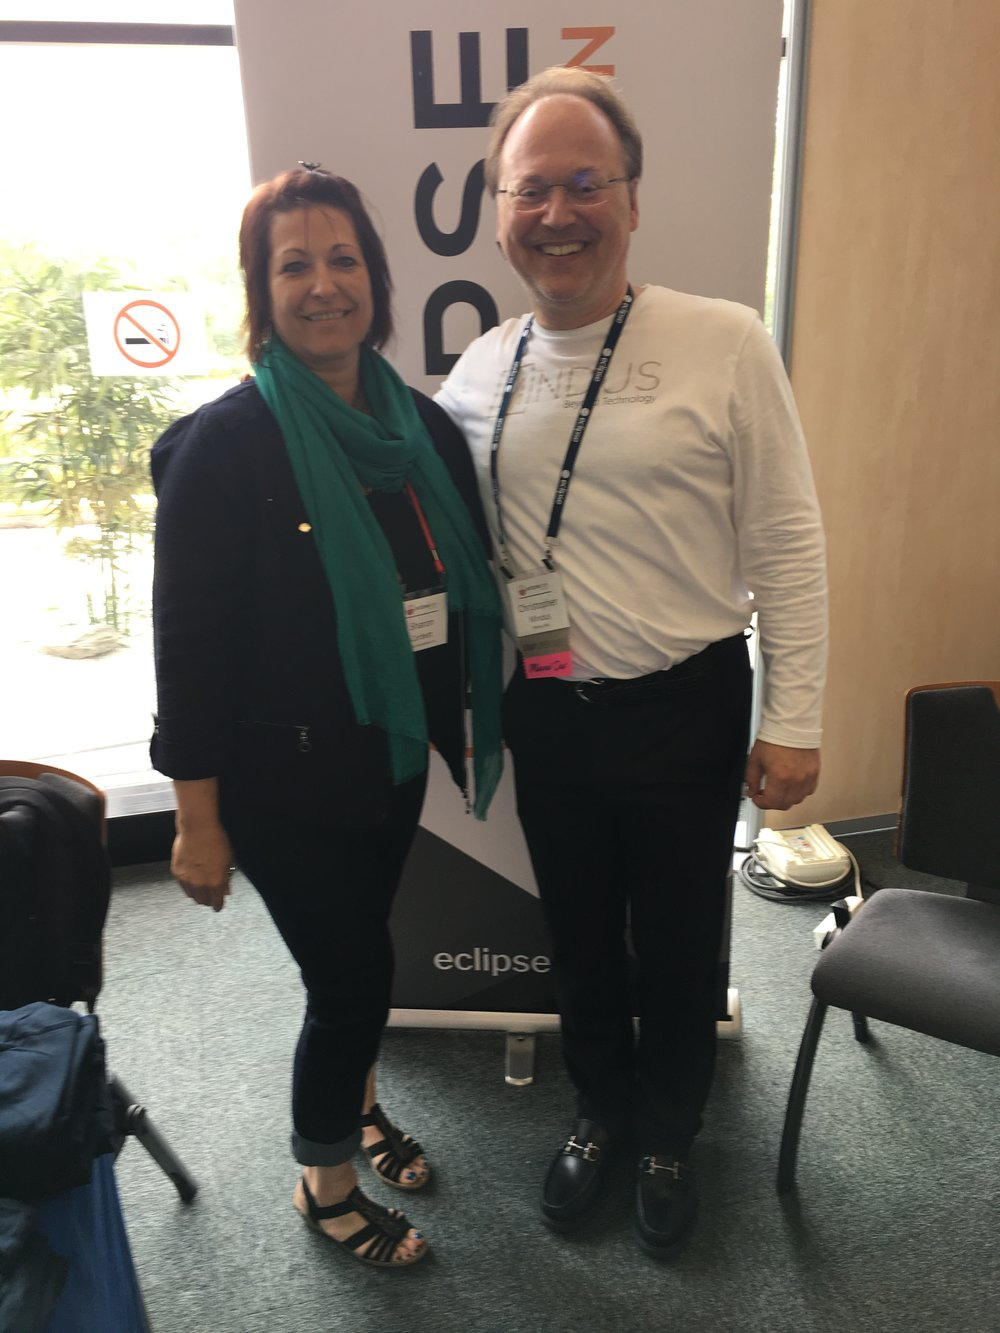 EclipseCon's Sharon Corbett with Christopher Mindus